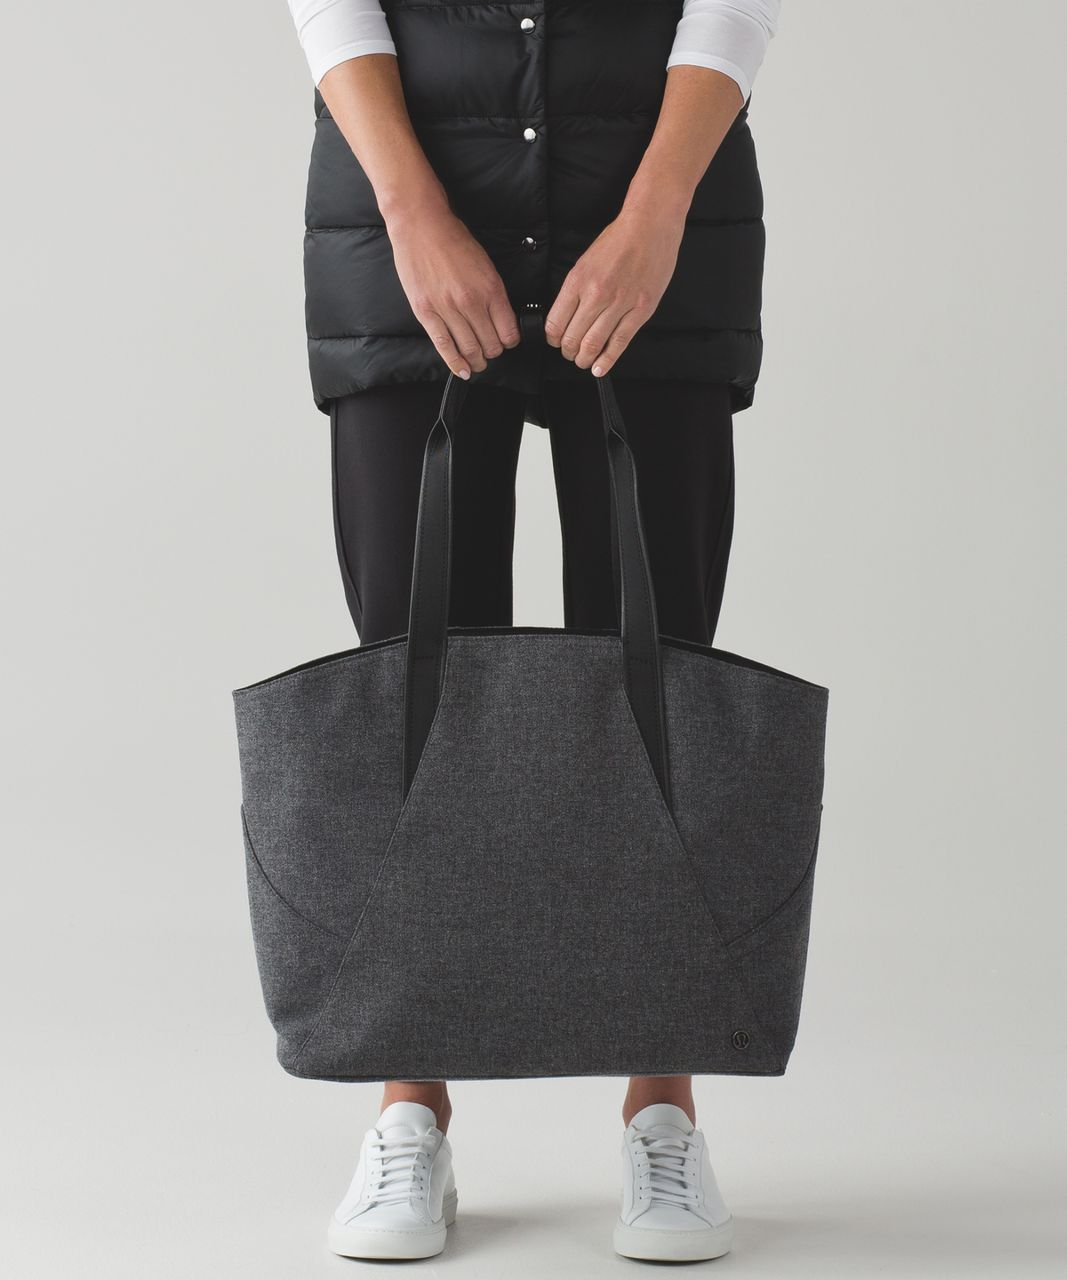 67539229d0 Lululemon All Day Tote - Heathered Dark Grey / Black - lulu fanatics